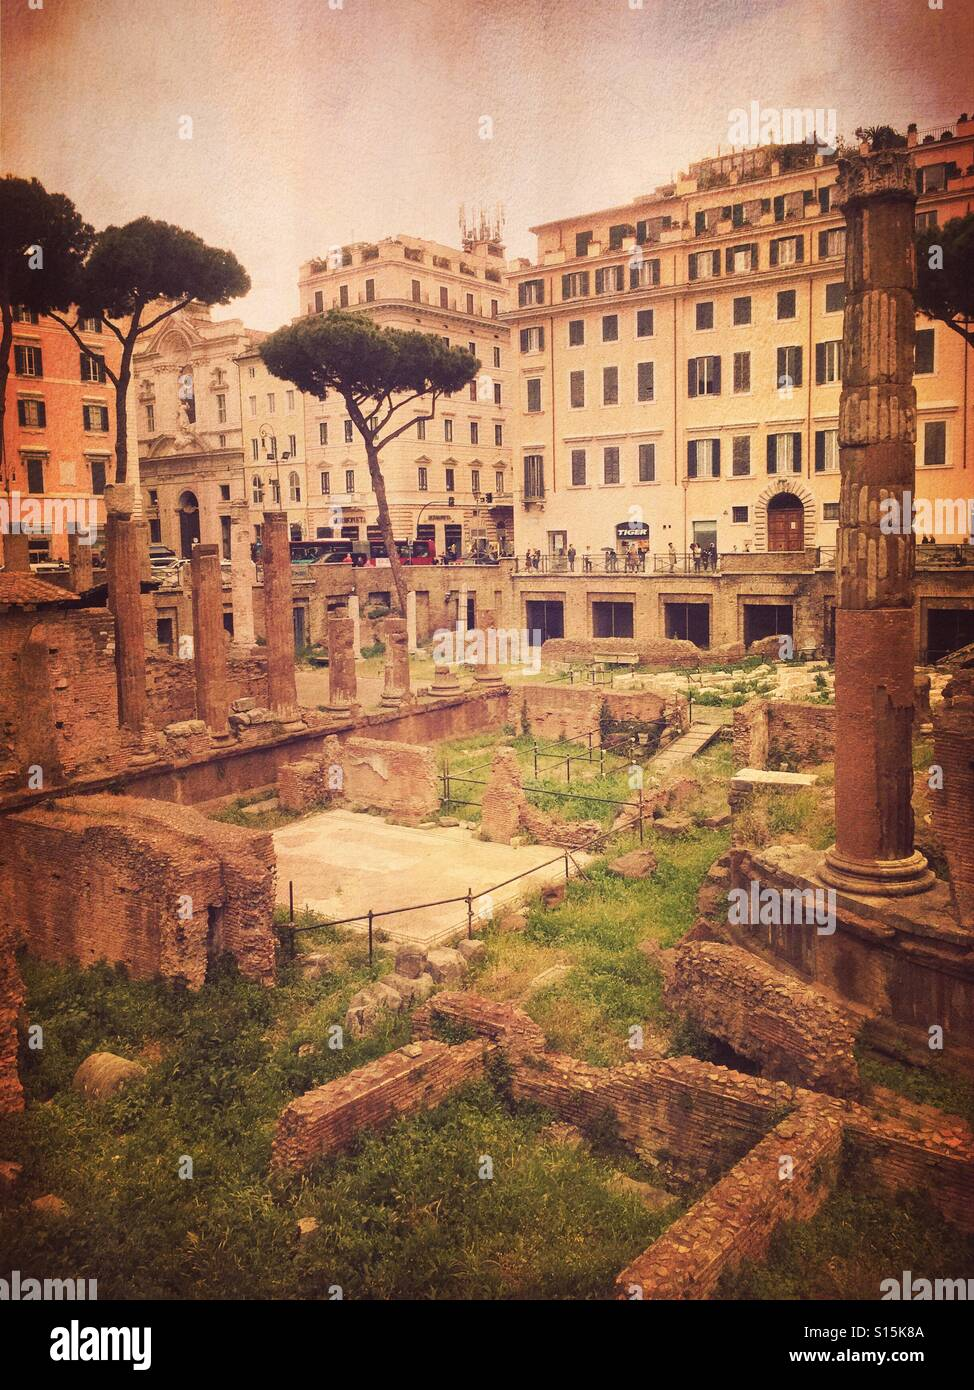 View of Largo di Torre Argentina square within the ancient Campus Martius, where Julius Caesar is believed to have Stock Photo